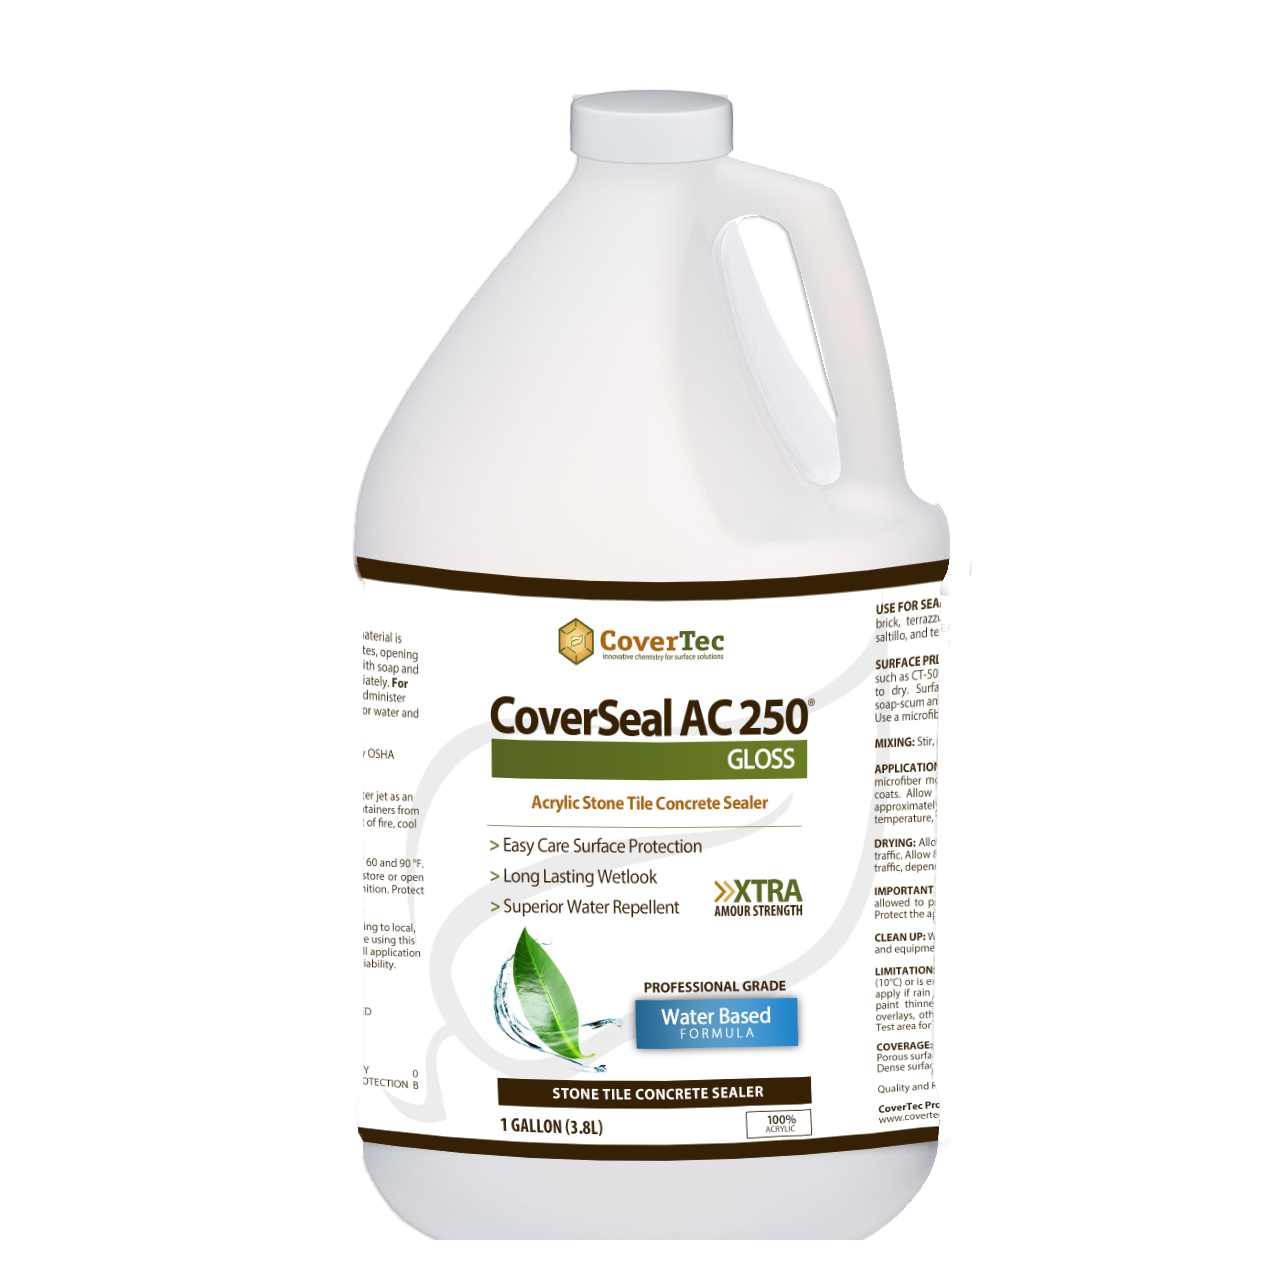 CoverSeal AC250 Wetlook WB Acrylic Sealer, Gloss Finish